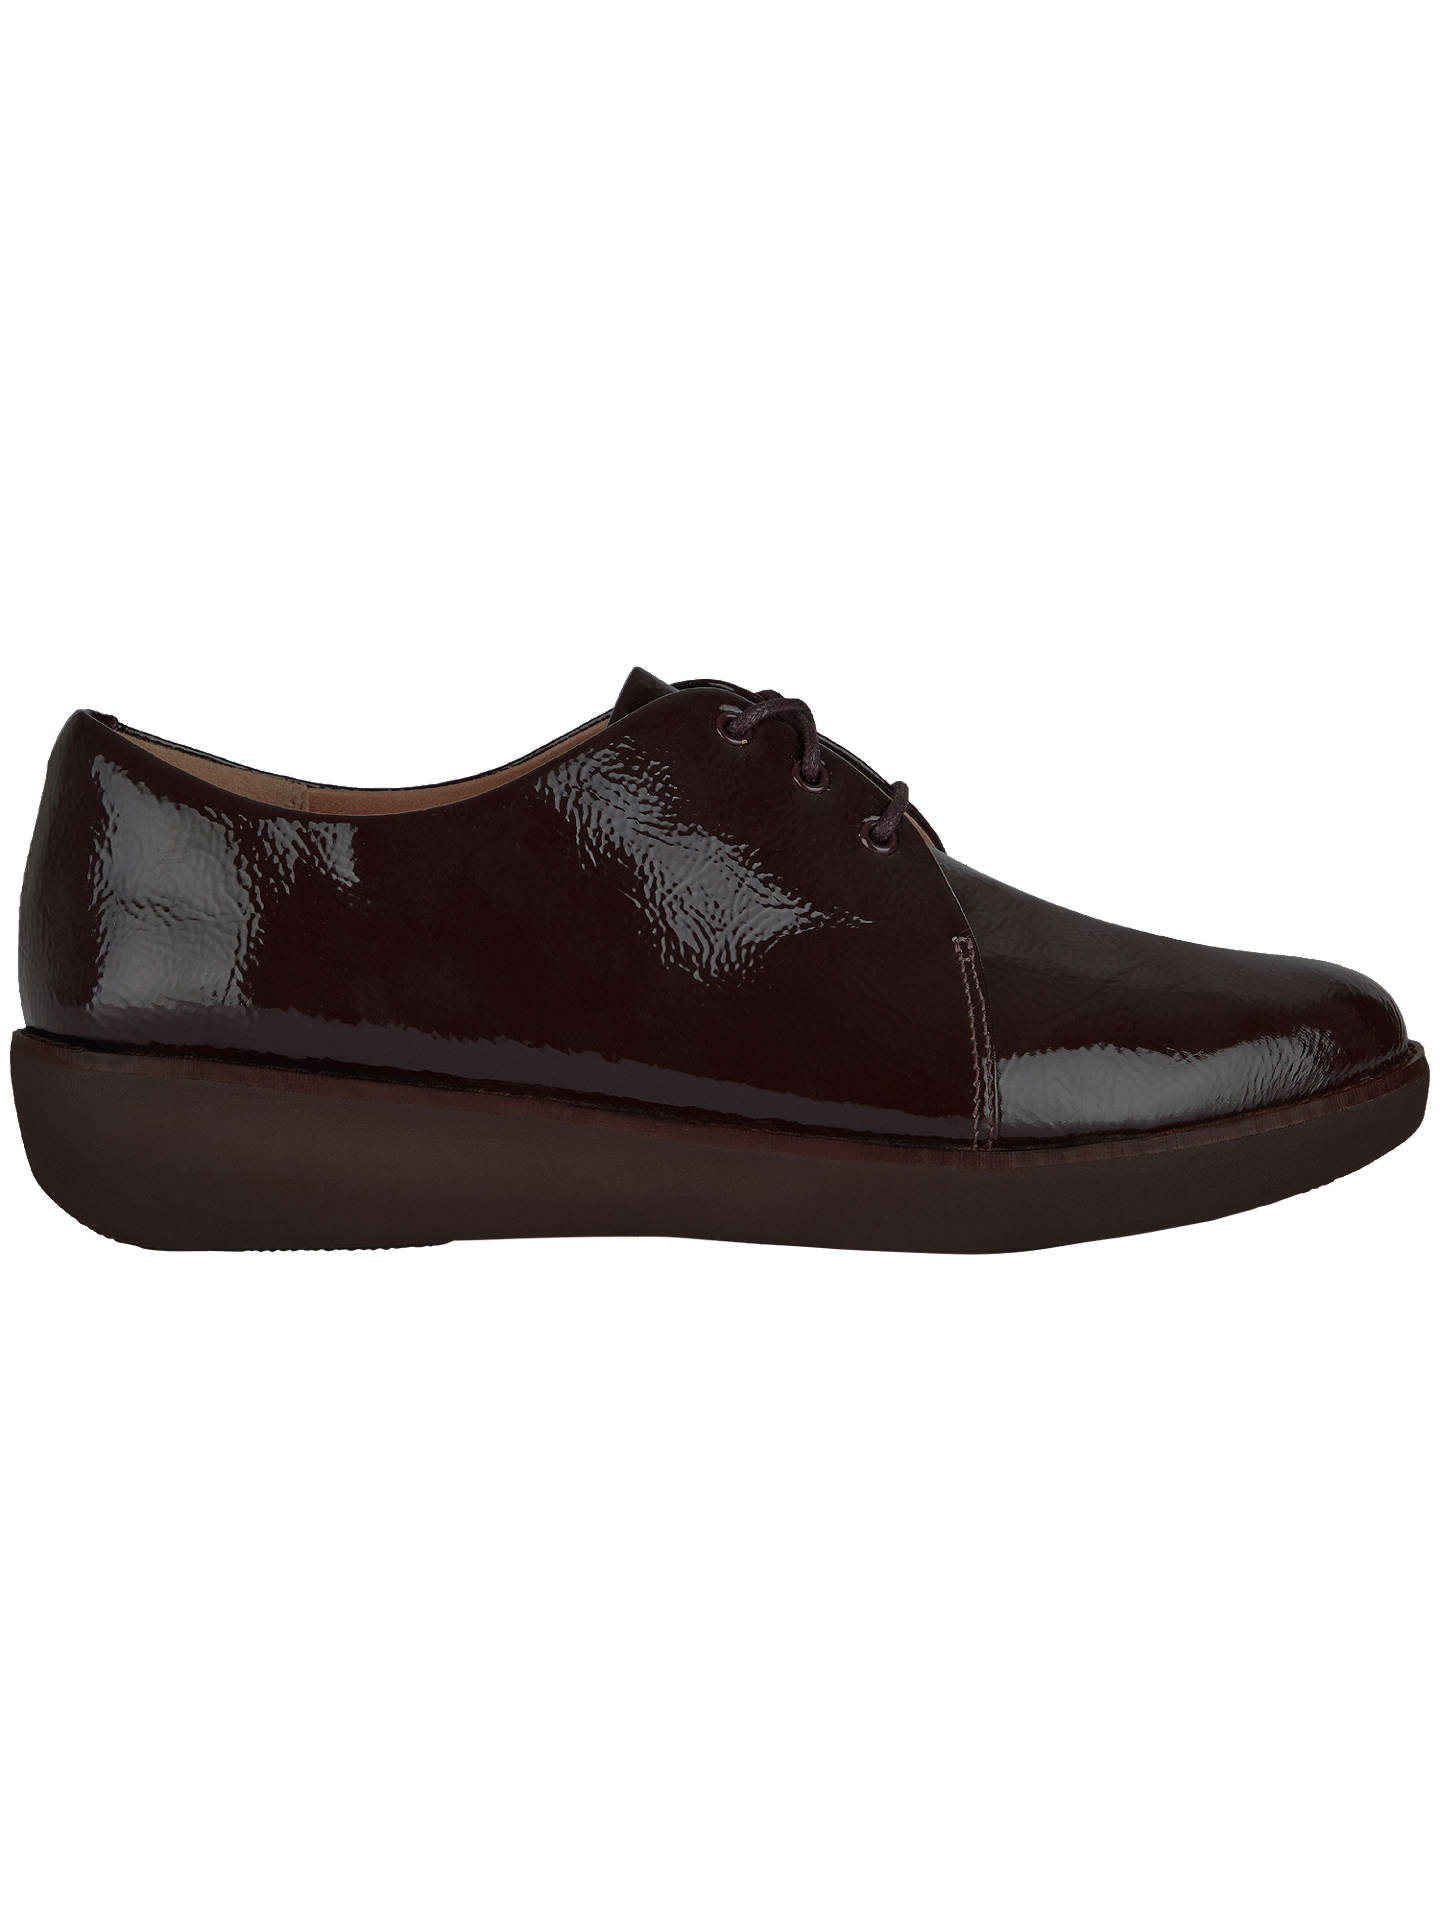 90d0c0e106659f Fitflop Derby Lace Up Shoes at John Lewis   Partners